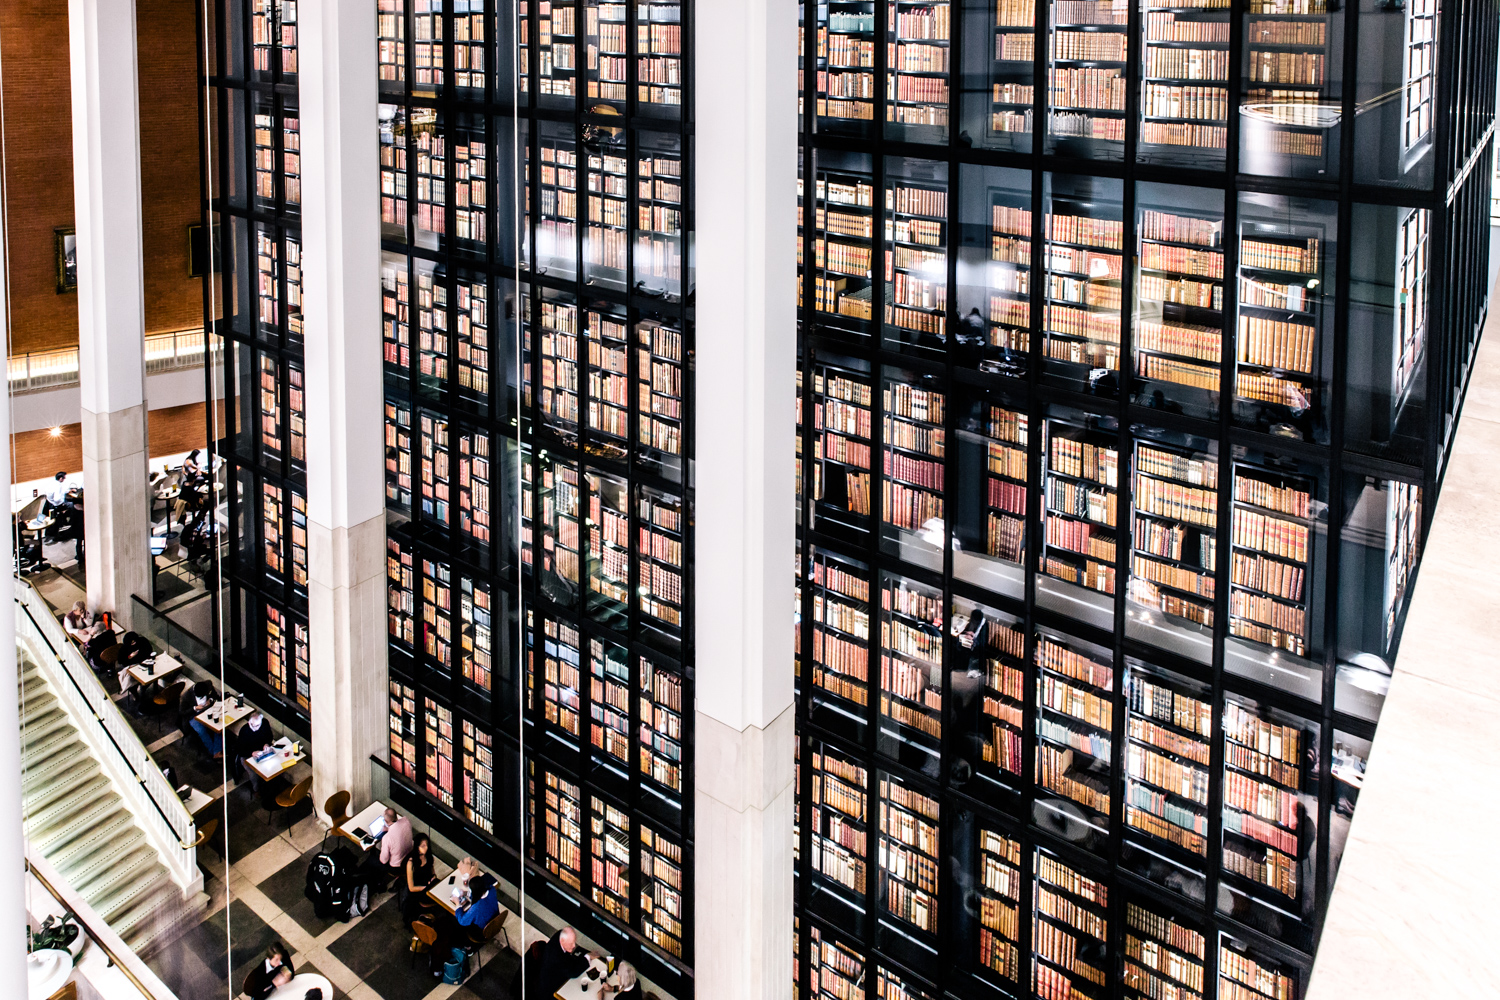 Photo of the King's Library at the British Library, credit Luca Sage